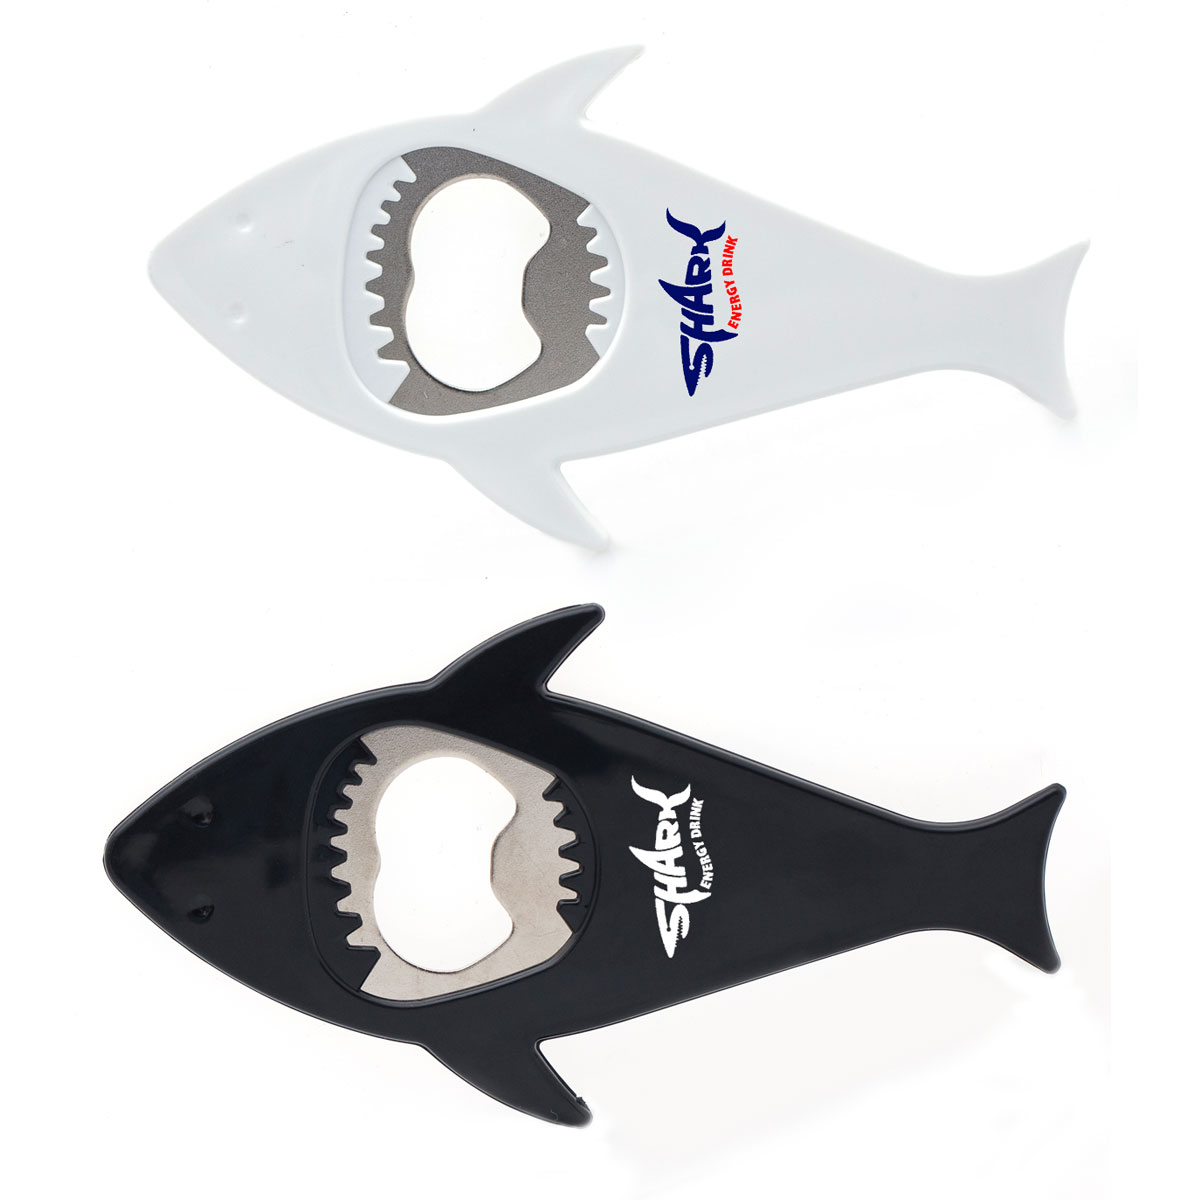 SHARKY BOTTLE OPENER